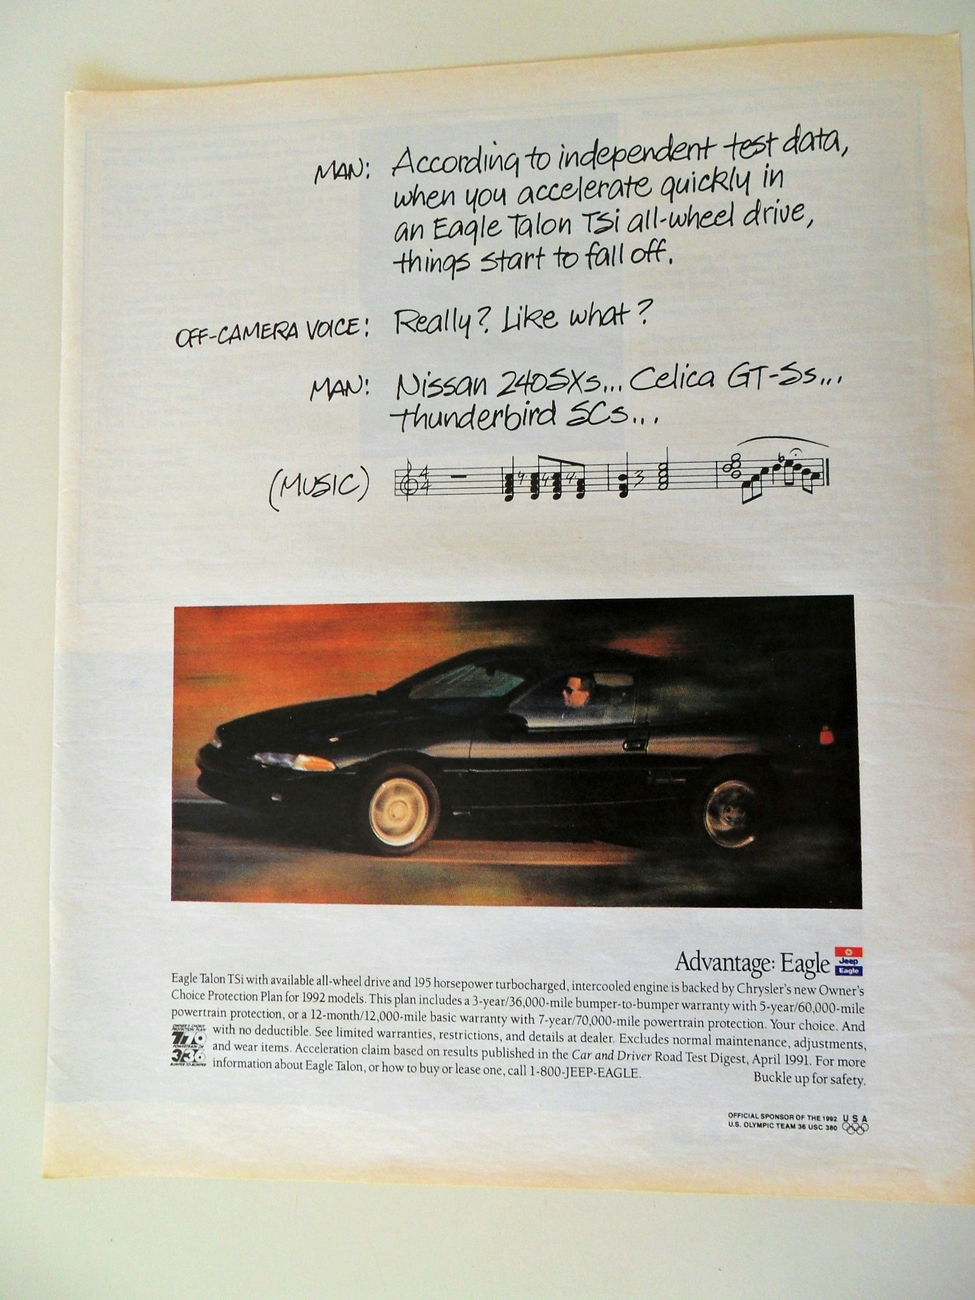 Print Ad Eagle Talon TSi 1991 All Wheel Drive Car Automobile